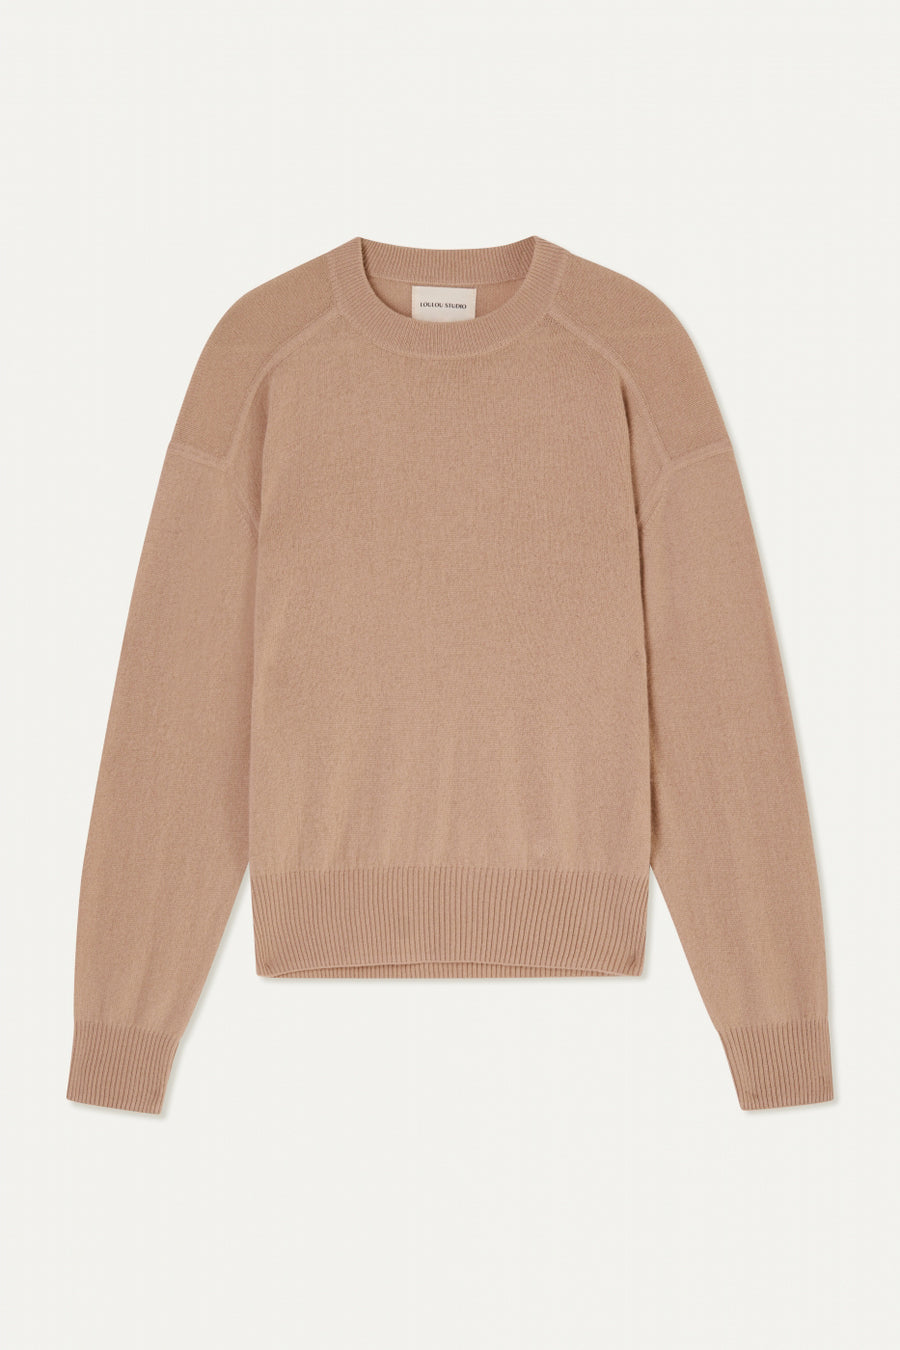 Arutua Sweater - Noisette